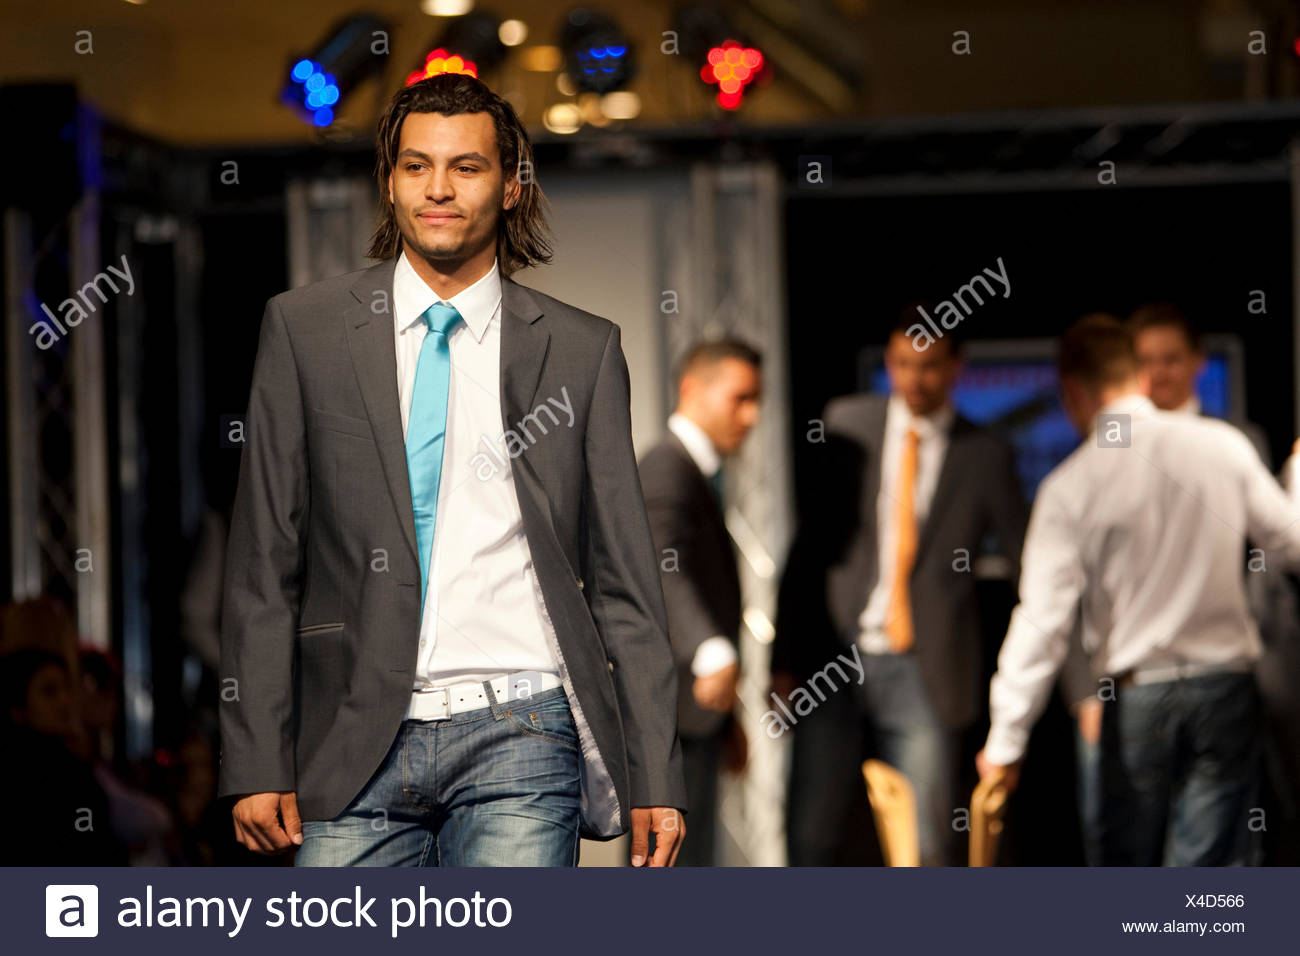 Daniel Mkongo, Mister Switzerland-finalist in 2010, presenting Feldpausch and PKZ in a fashion show in the Emmencenter shopping - Stock Image